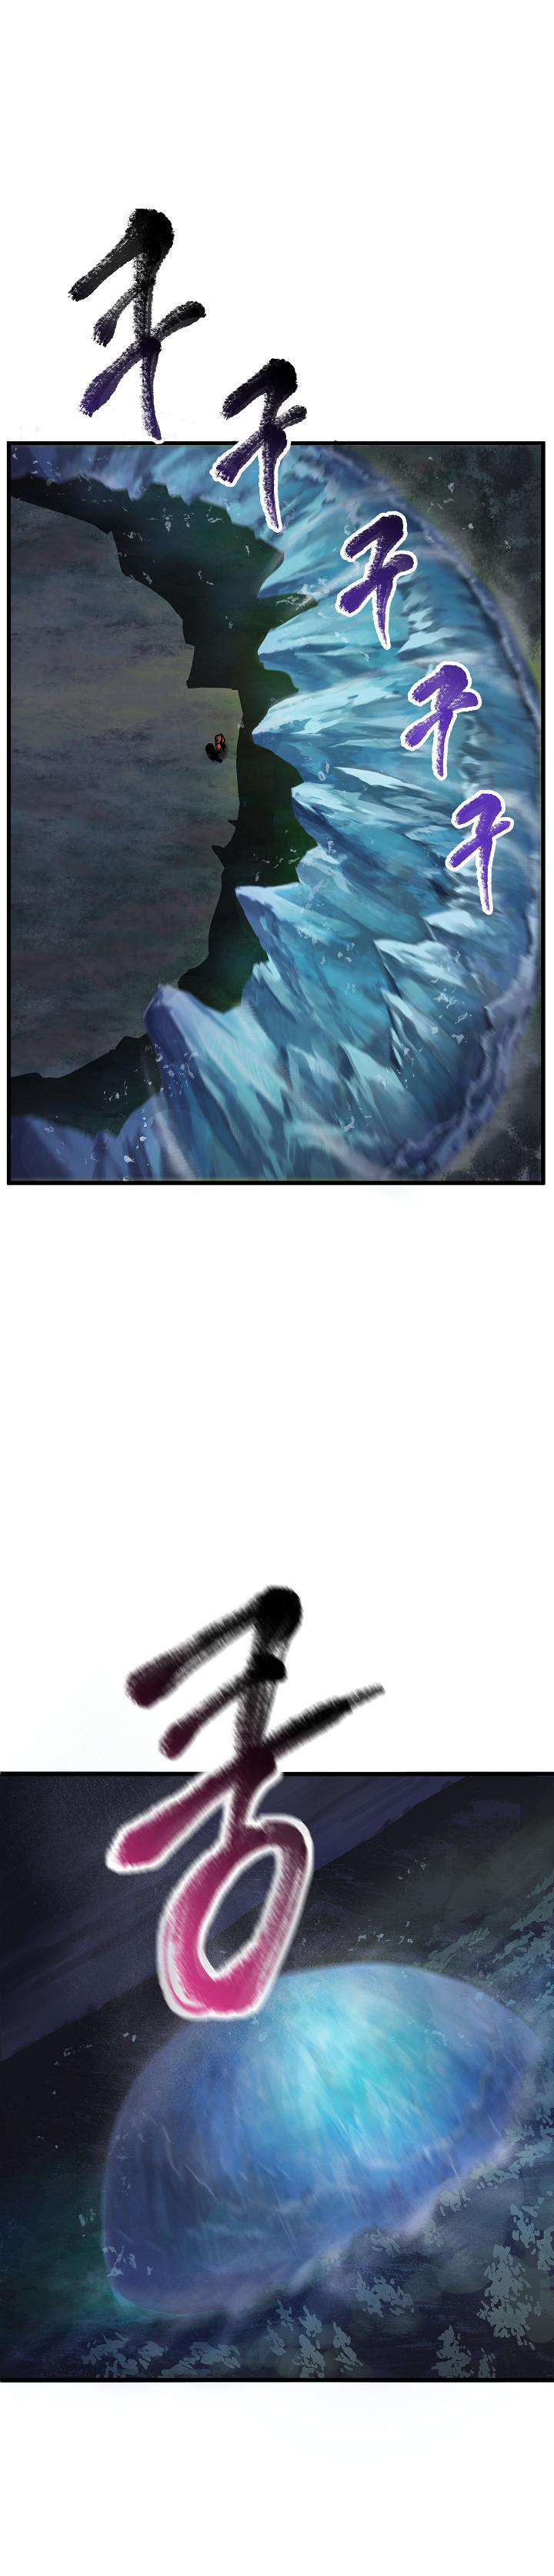 survival_story_of_a_sword_king_in_a_fantasy_world_17_20